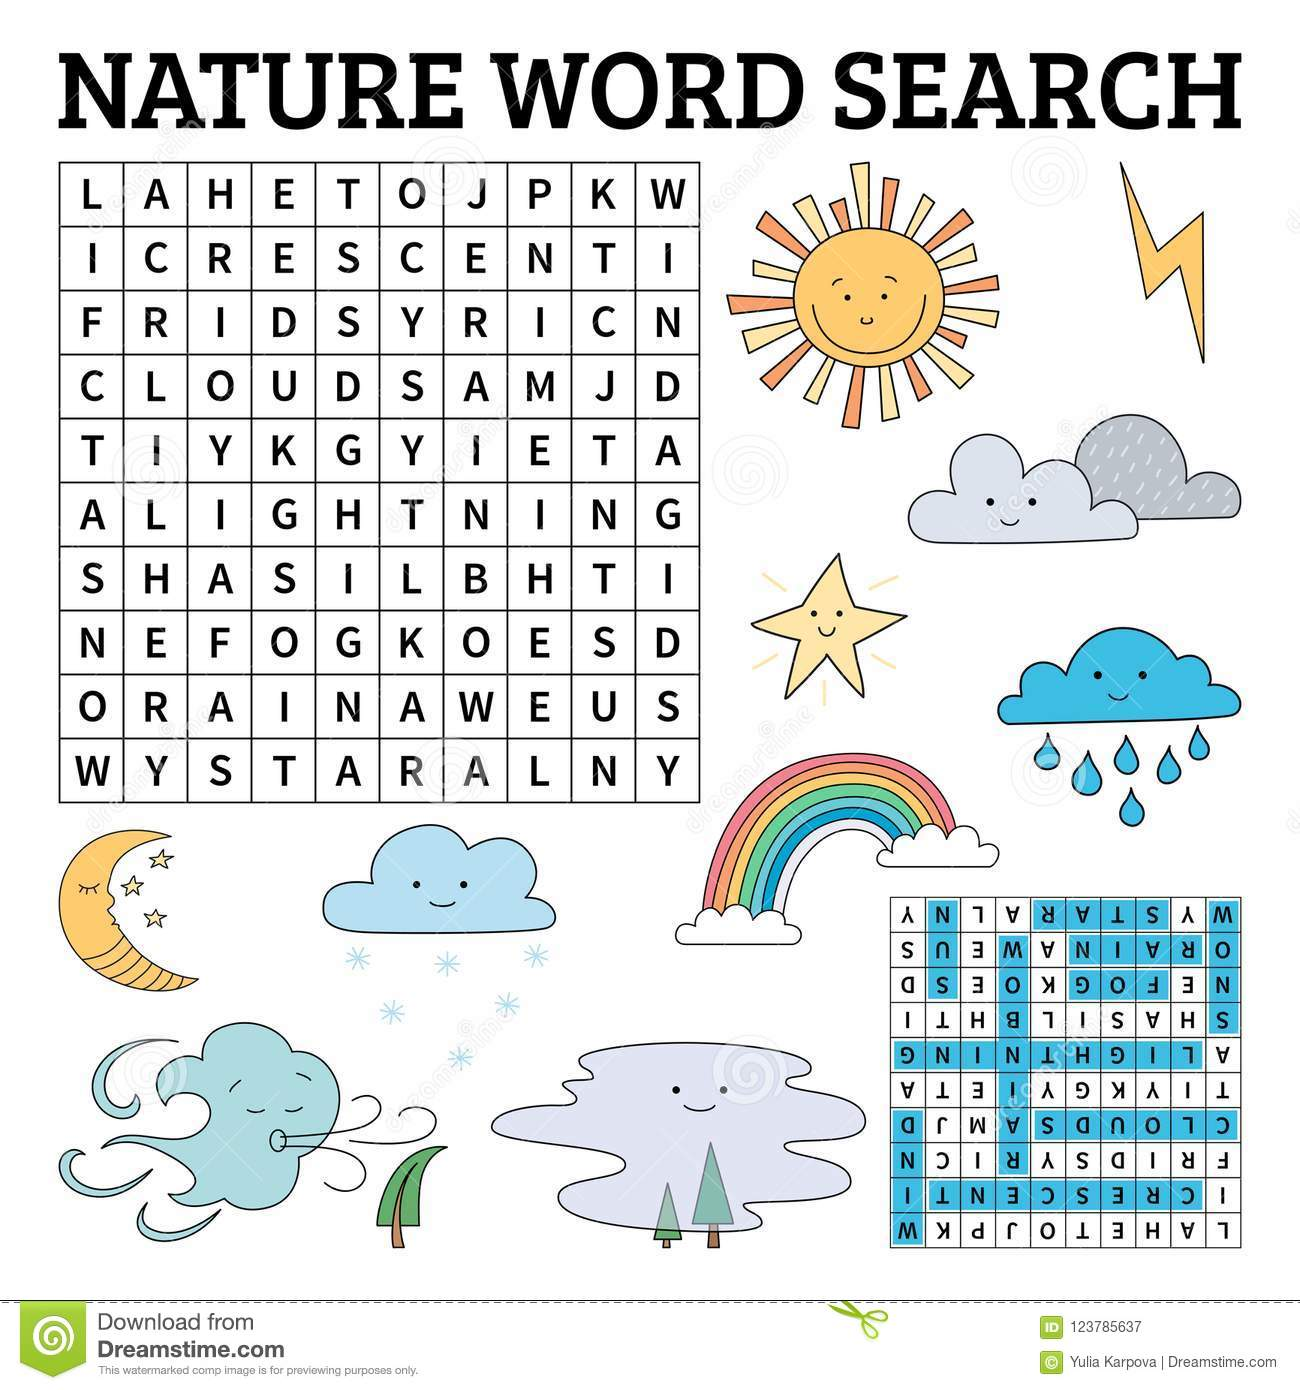 Learn English With A Nature Word Search Game For Kids